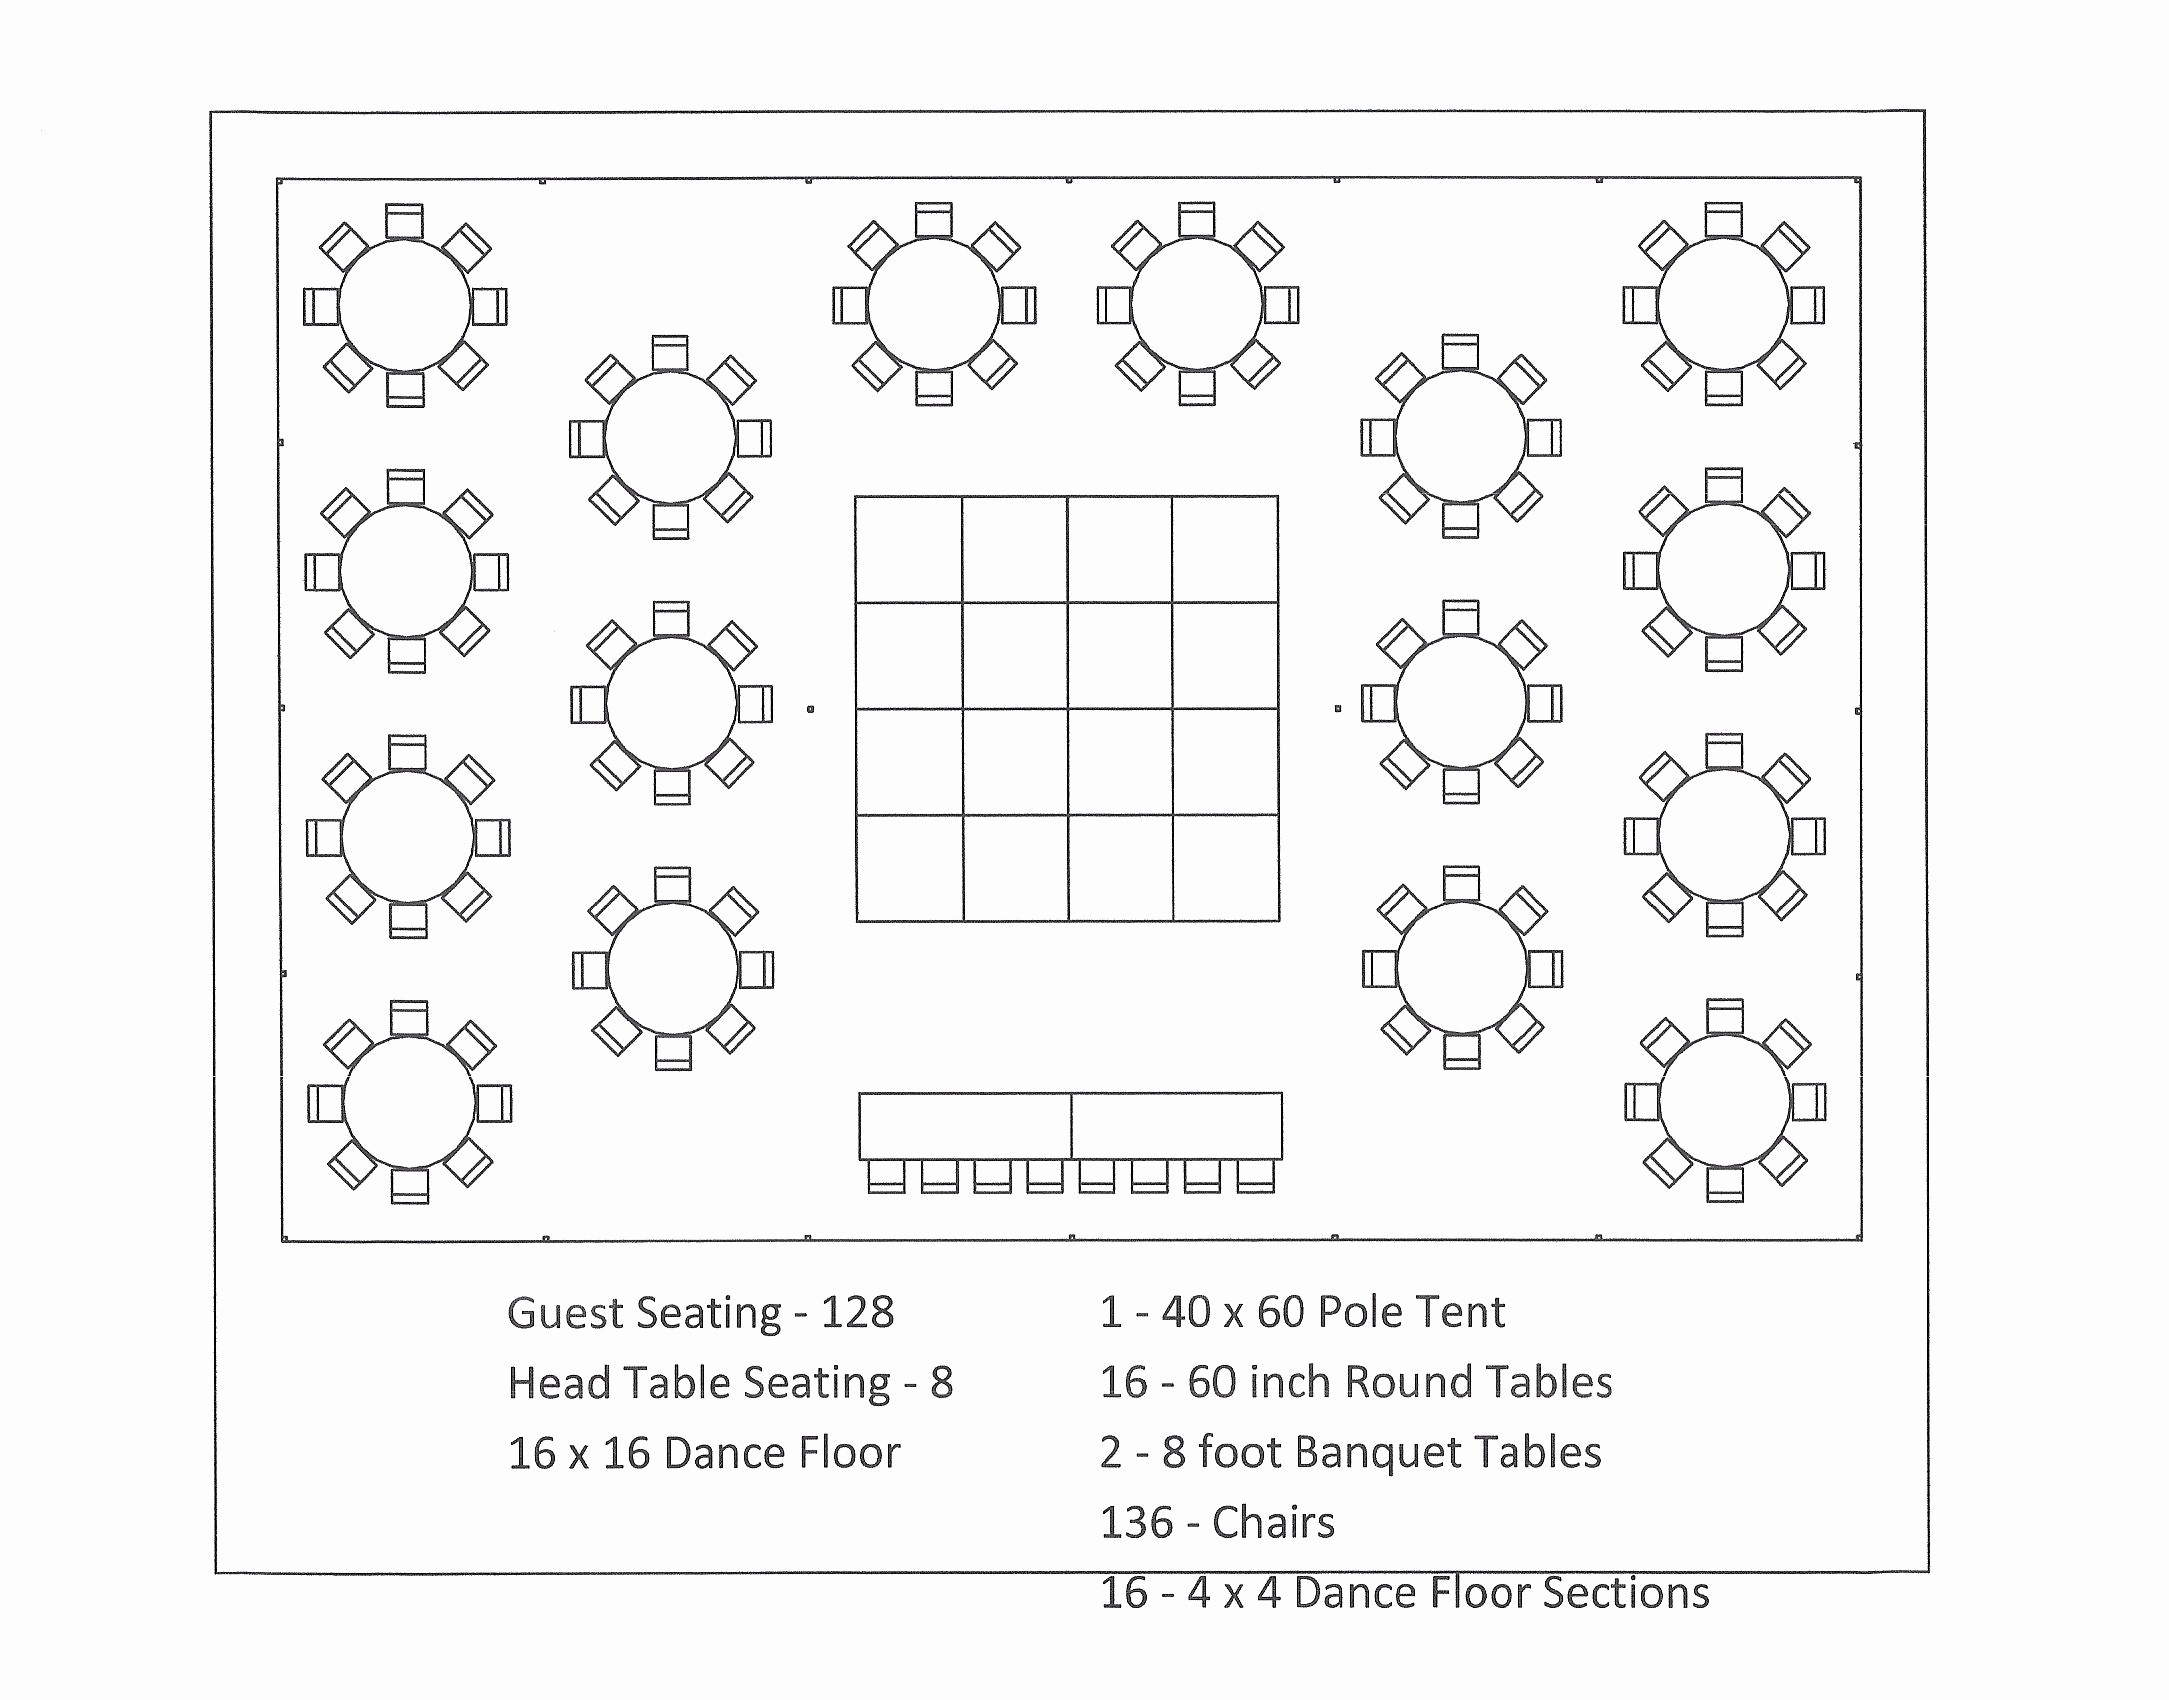 Wedding Seating Charts Templates Free Luxury Seating Chart for Wedding Reception Template